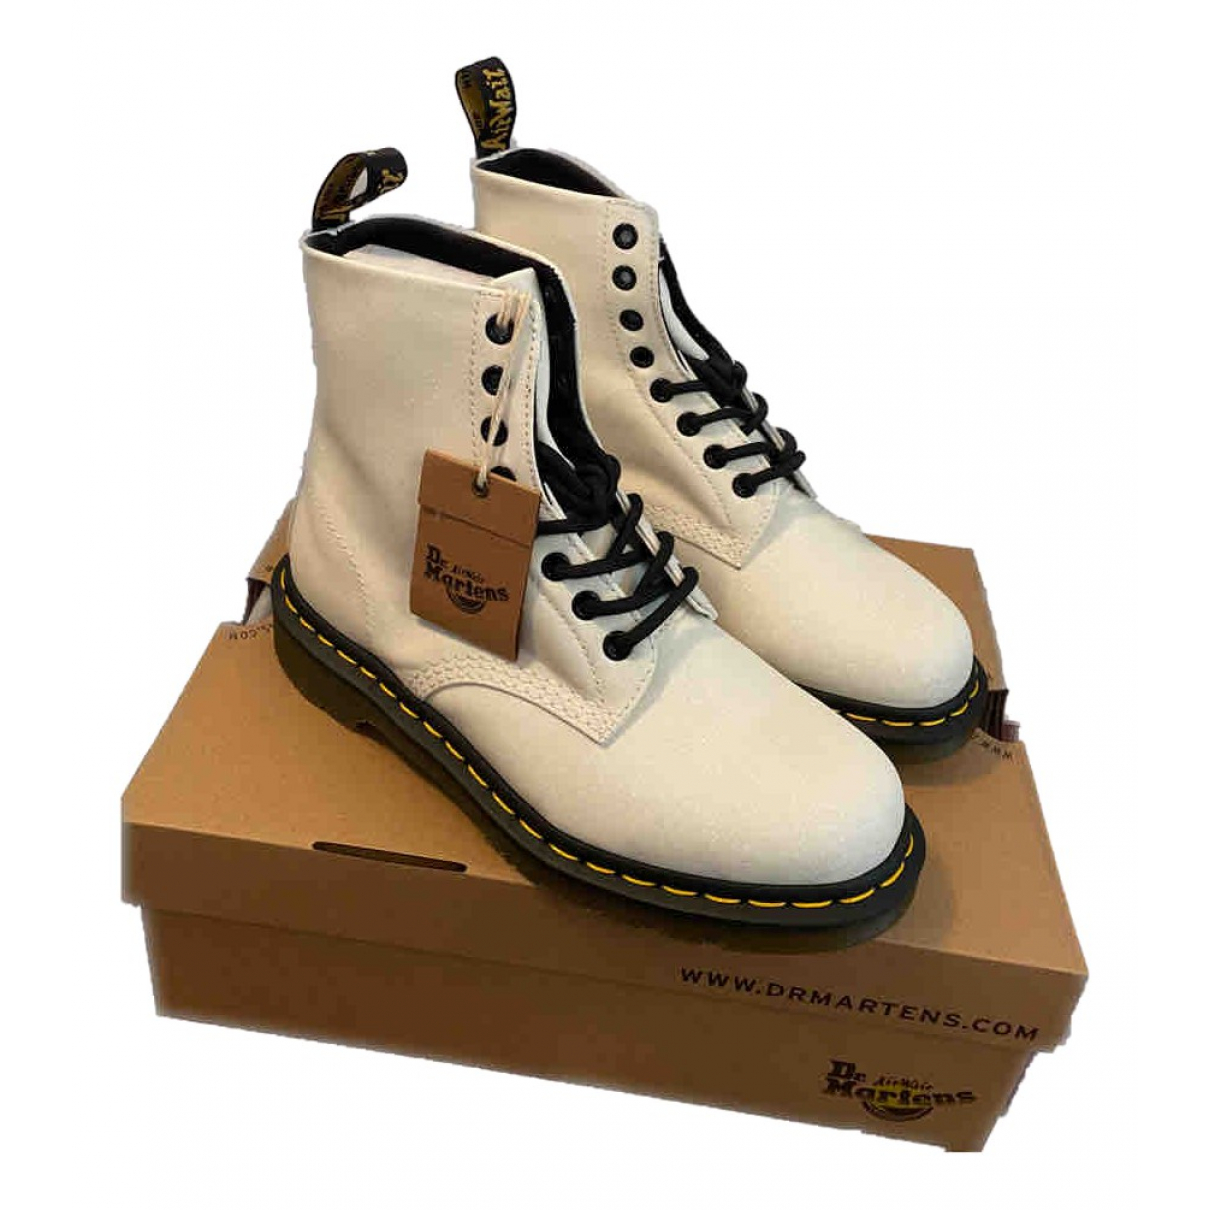 Dr. Martens N White Leather Ankle boots for Women 5 UK